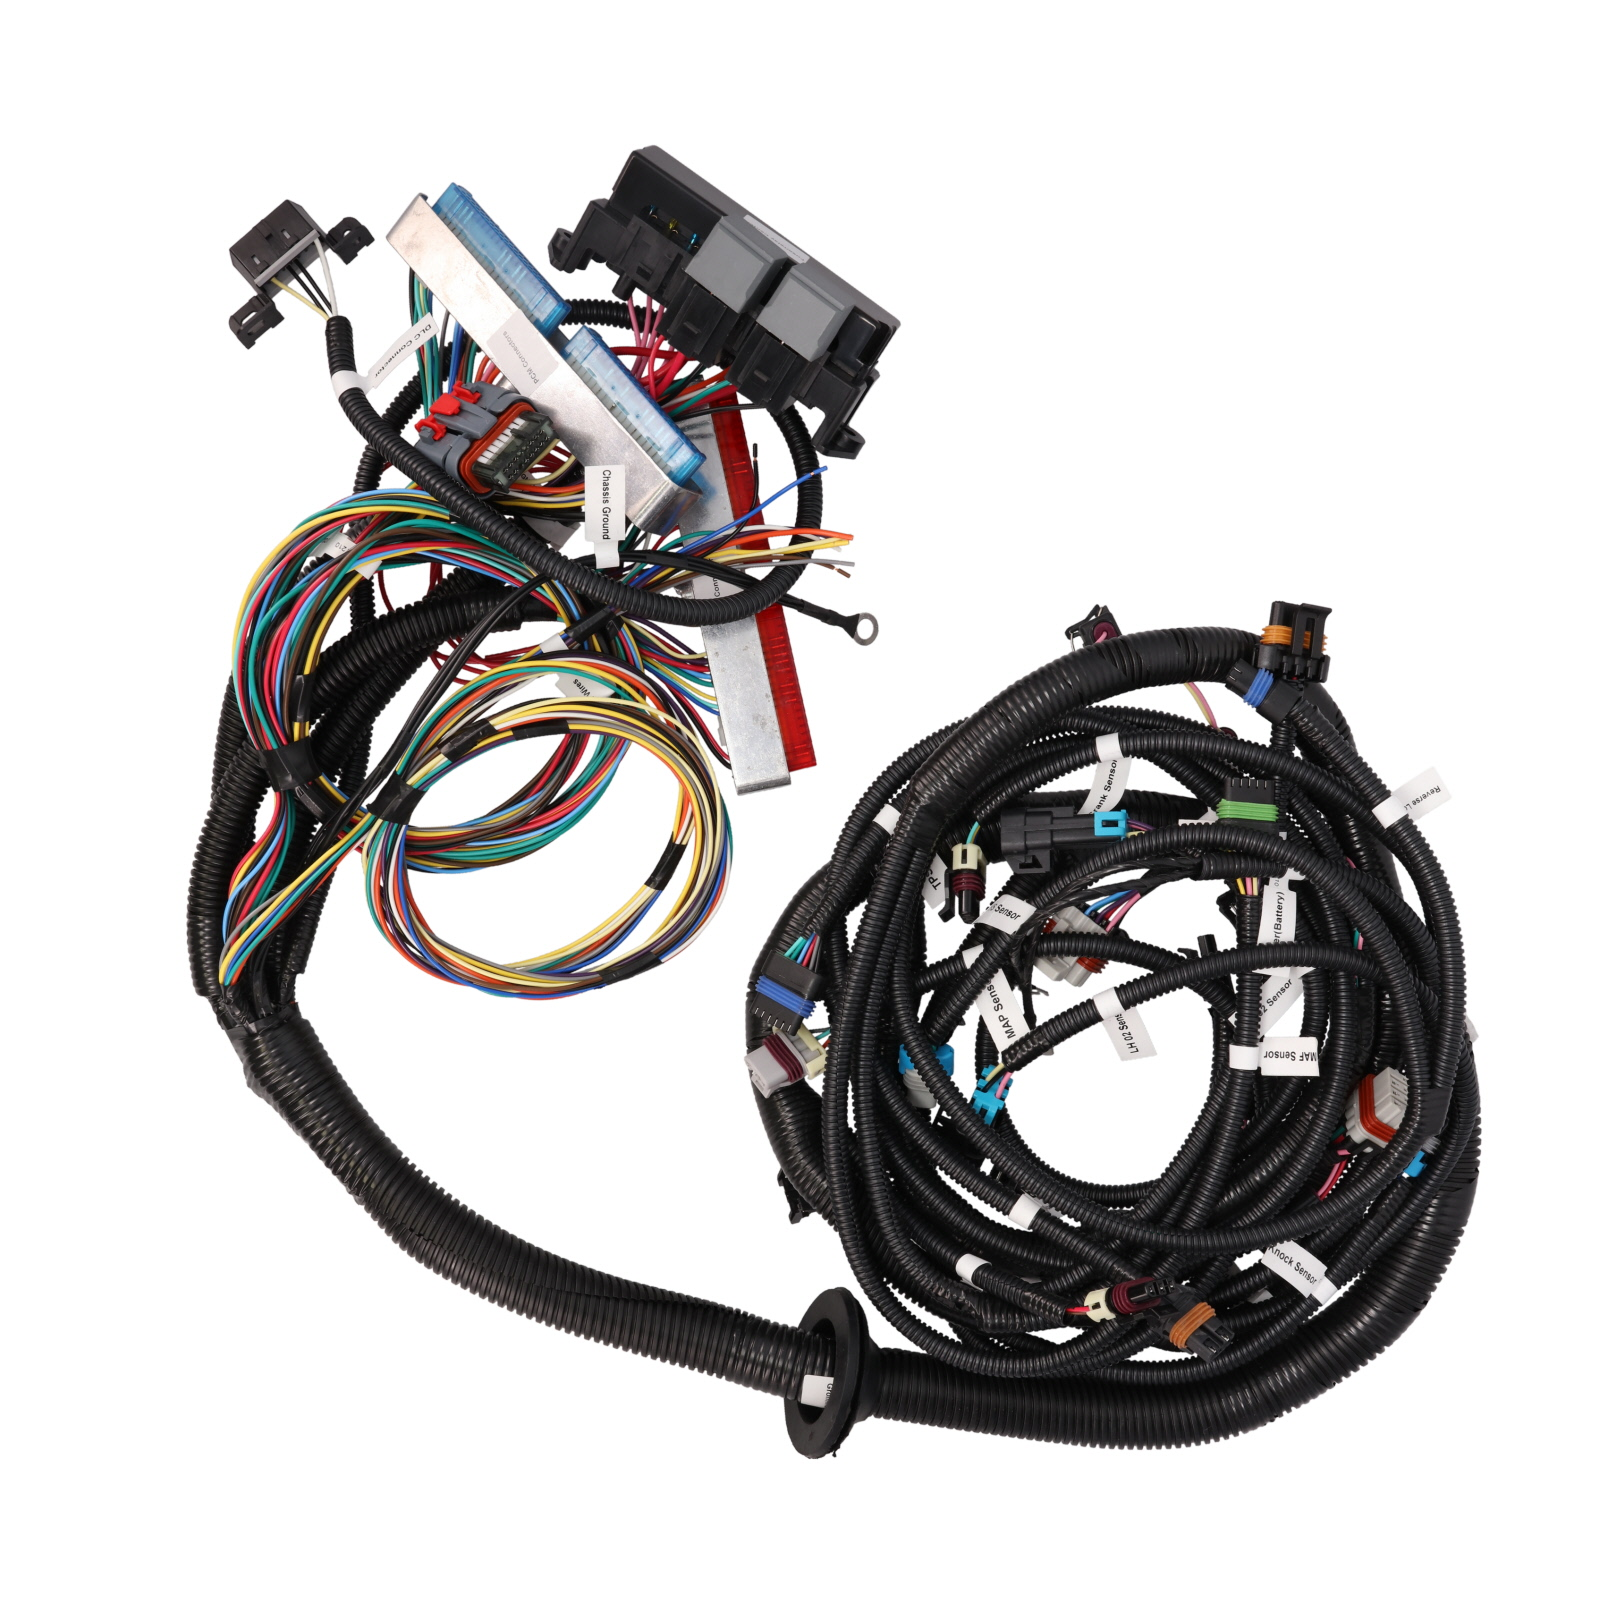 Standalone Wiring Harness for Drive-by-Wire LS1 with T56 Manual  Transmission | Top Street Performance - Free Shipping over $49Top Street Performance